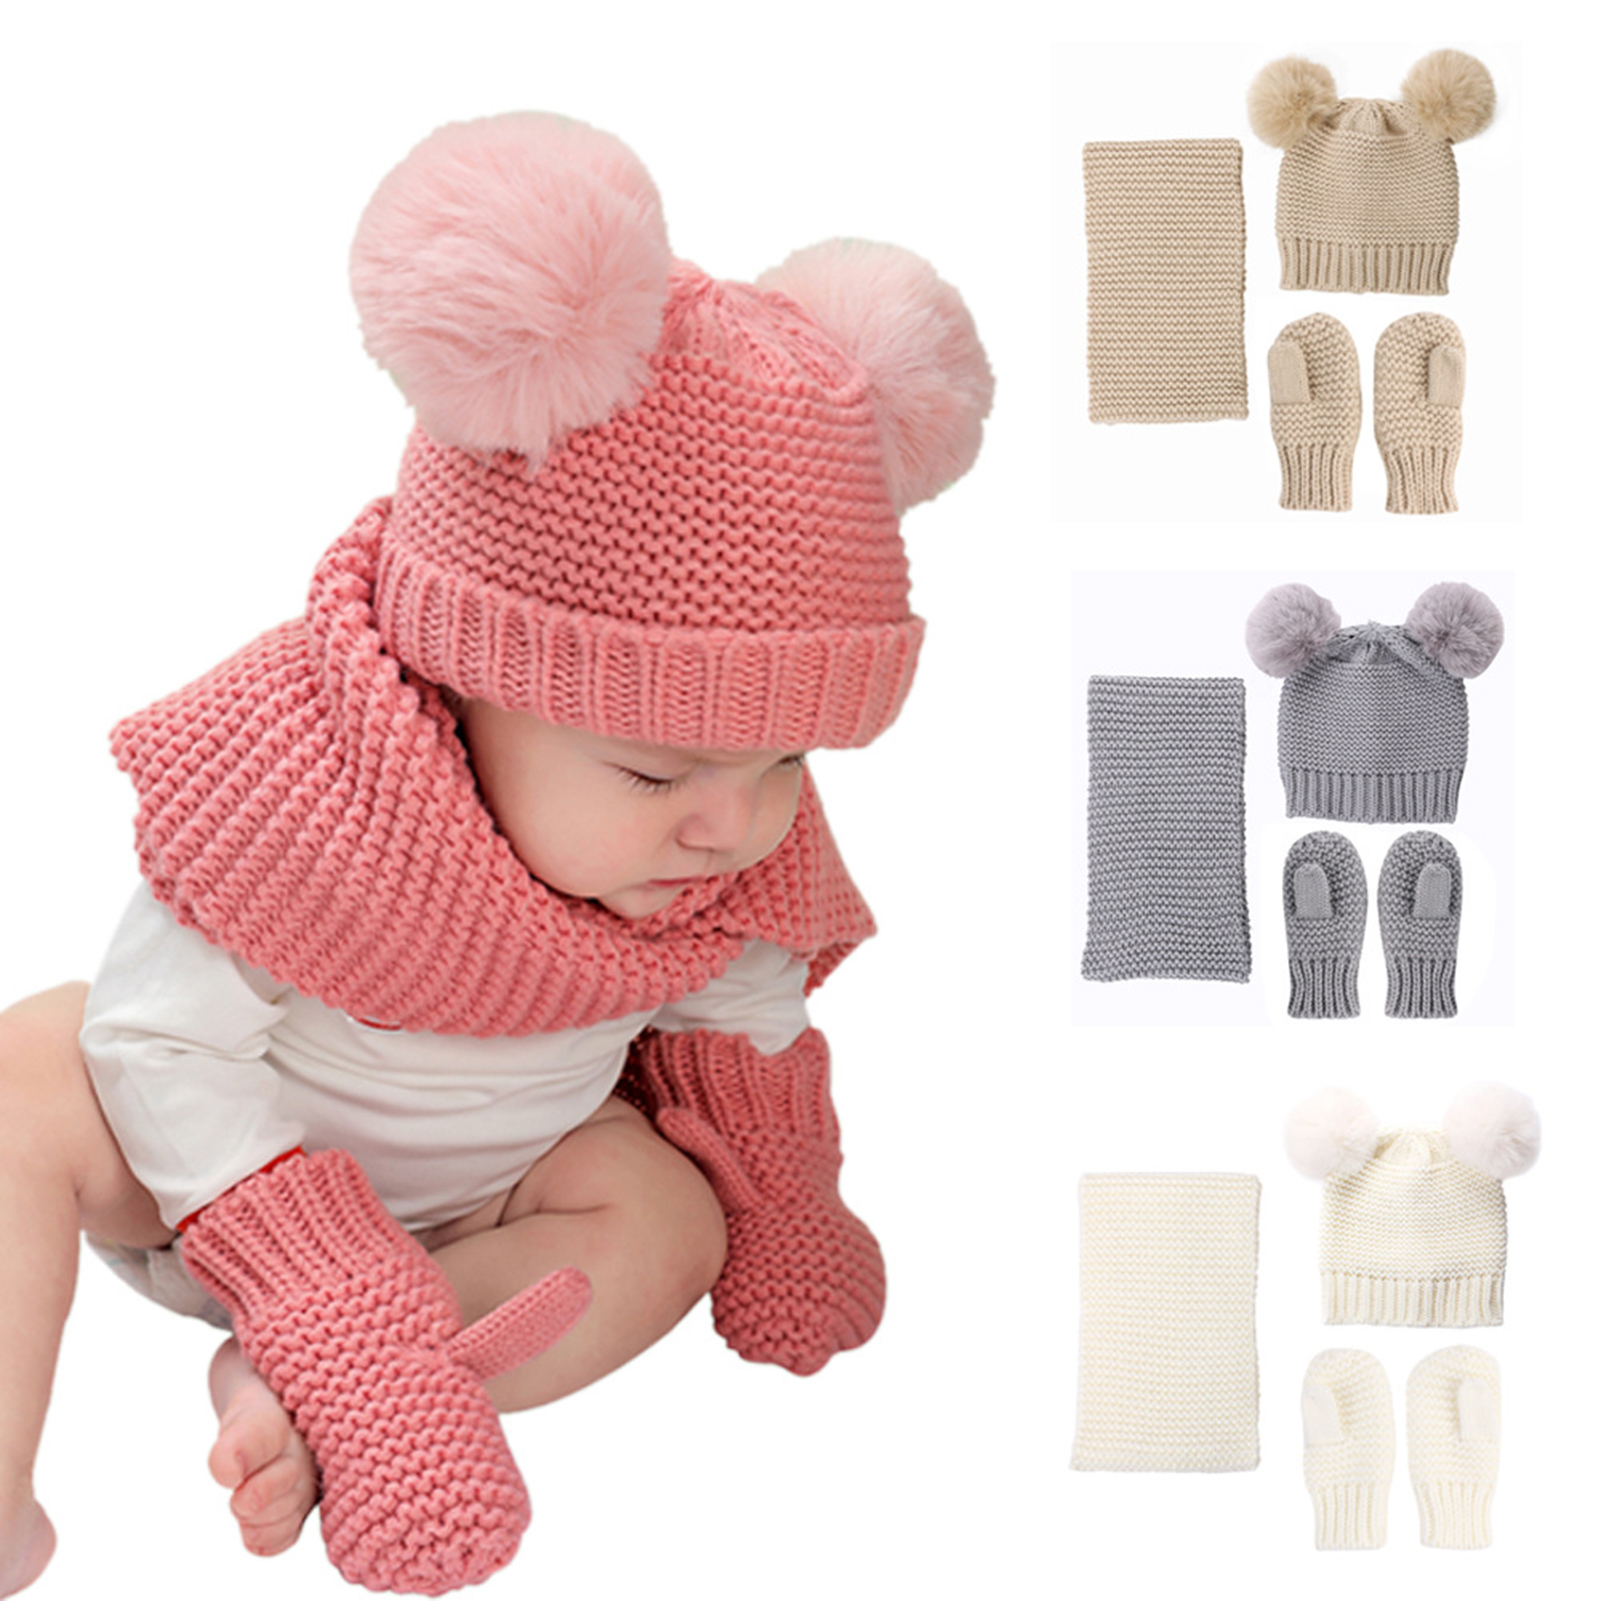 Colorfulworldstore 25 Styles Cartoon Plush Animal Hats with Scarfs Mittens Gloves Performance Props